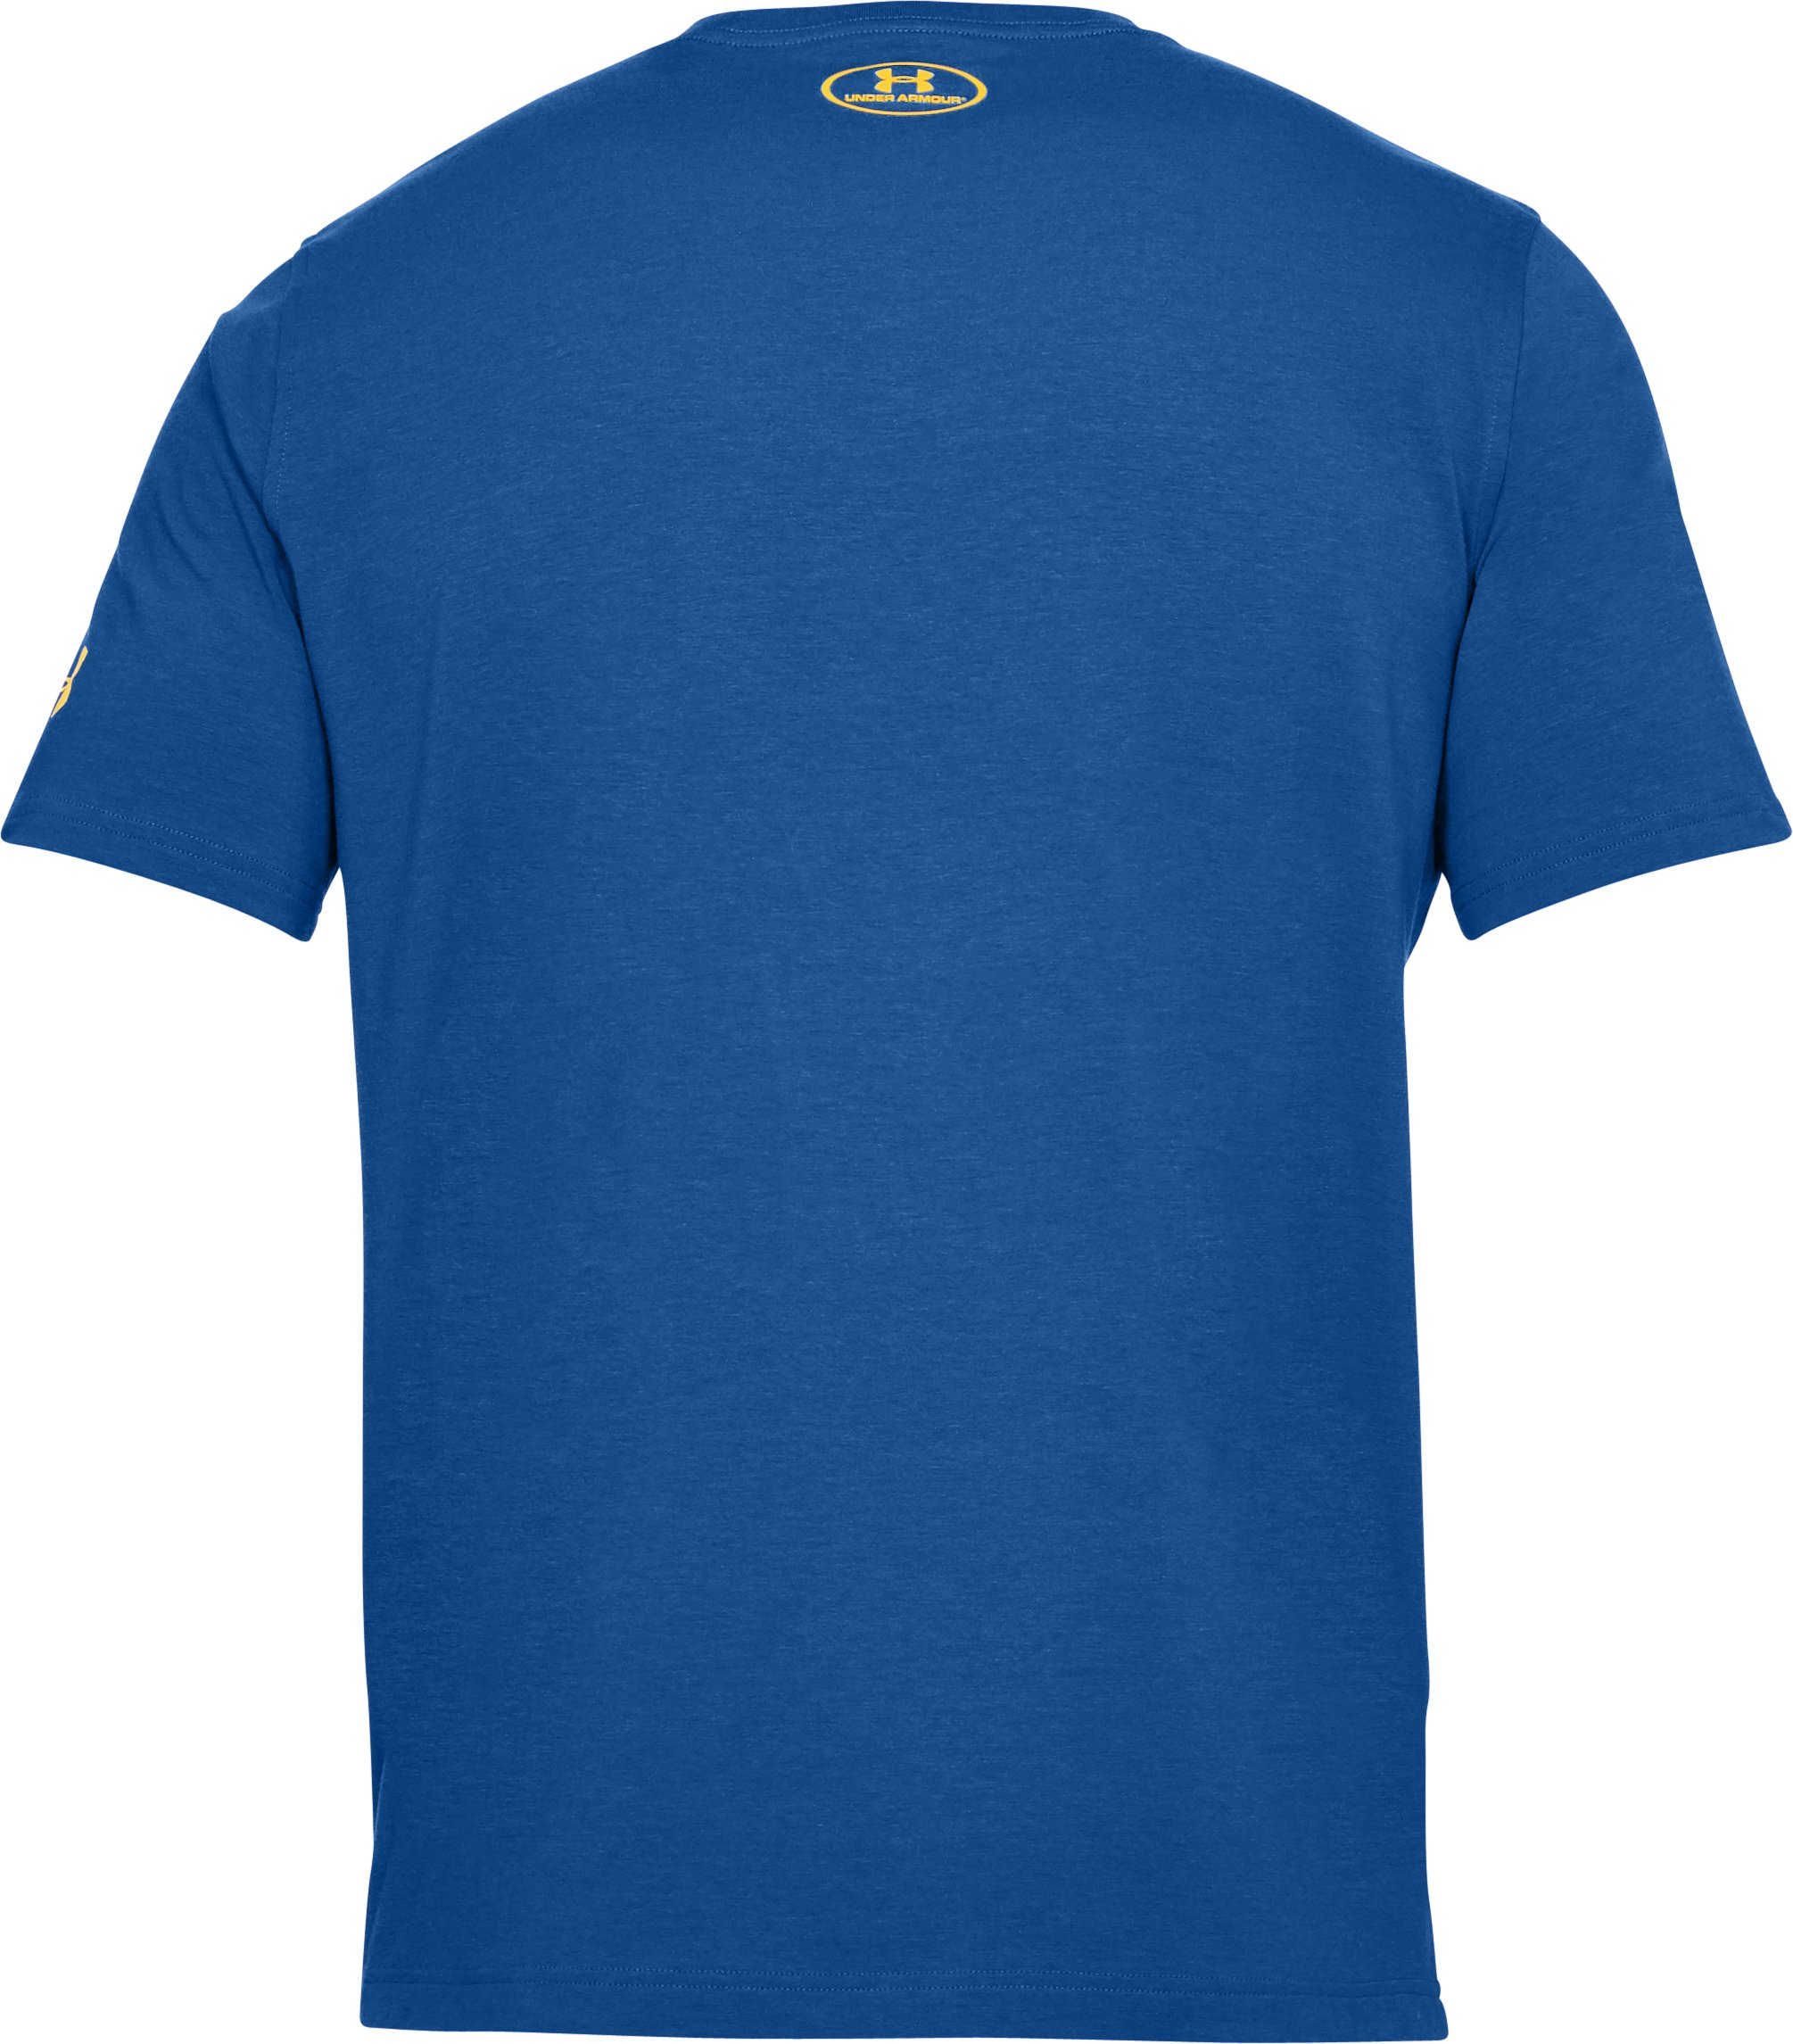 Men's SC30 Infinite Threes T-Shirt, Royal, undefined